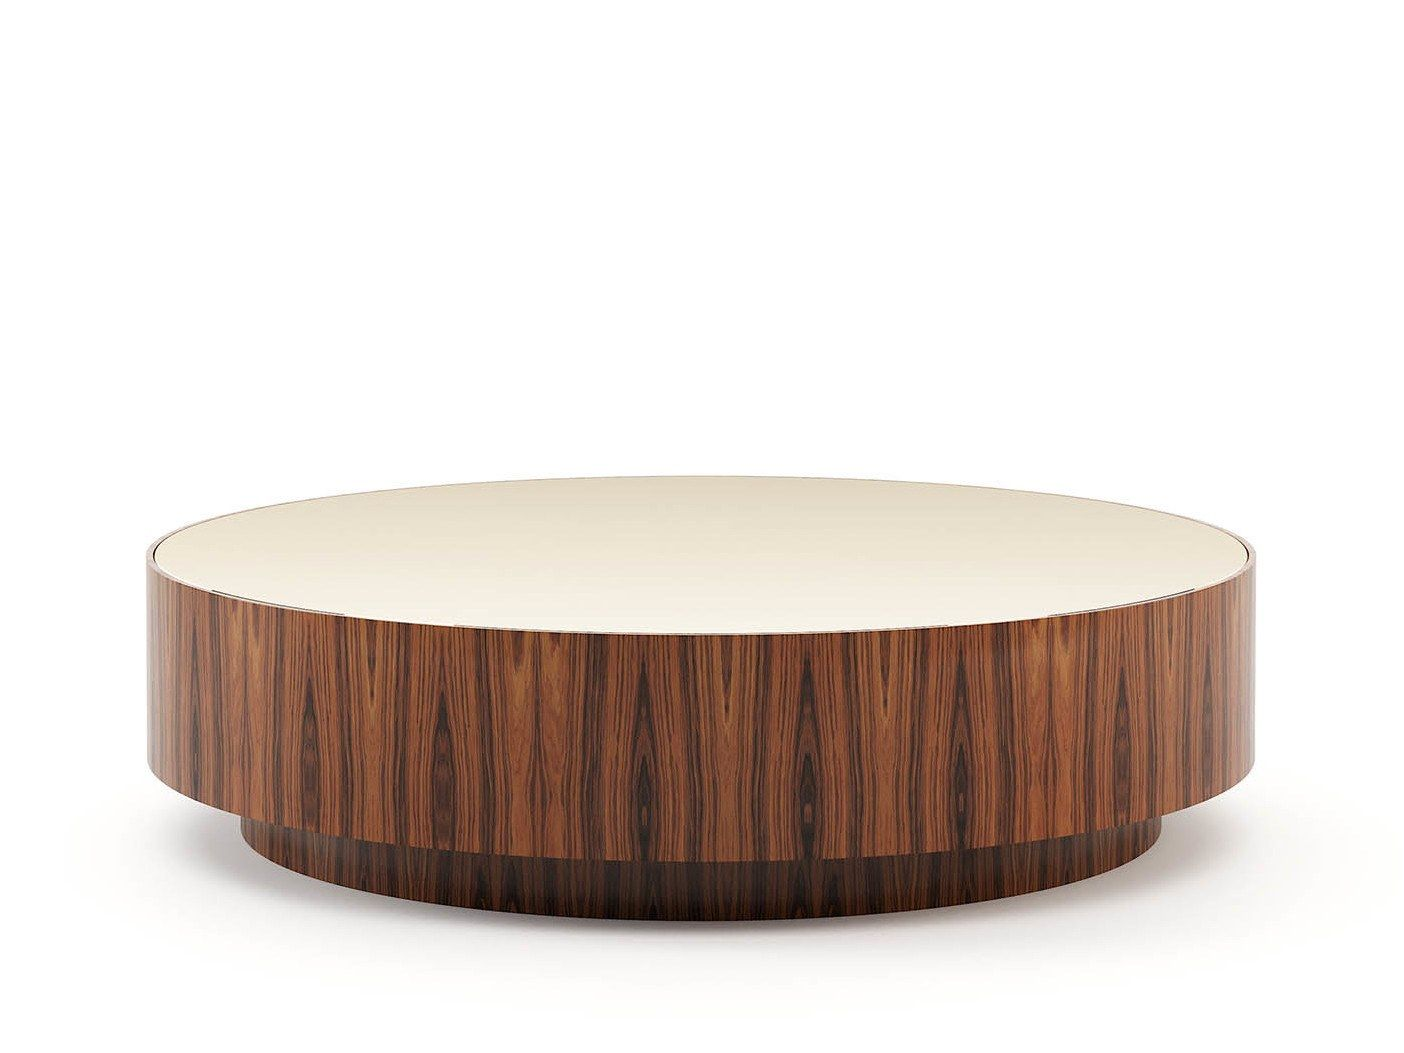 Gold Coffee Table By Laskasas Round Wooden Coffee Table Gold Coffee Table Wooden Coffee Table [ 1053 x 1404 Pixel ]